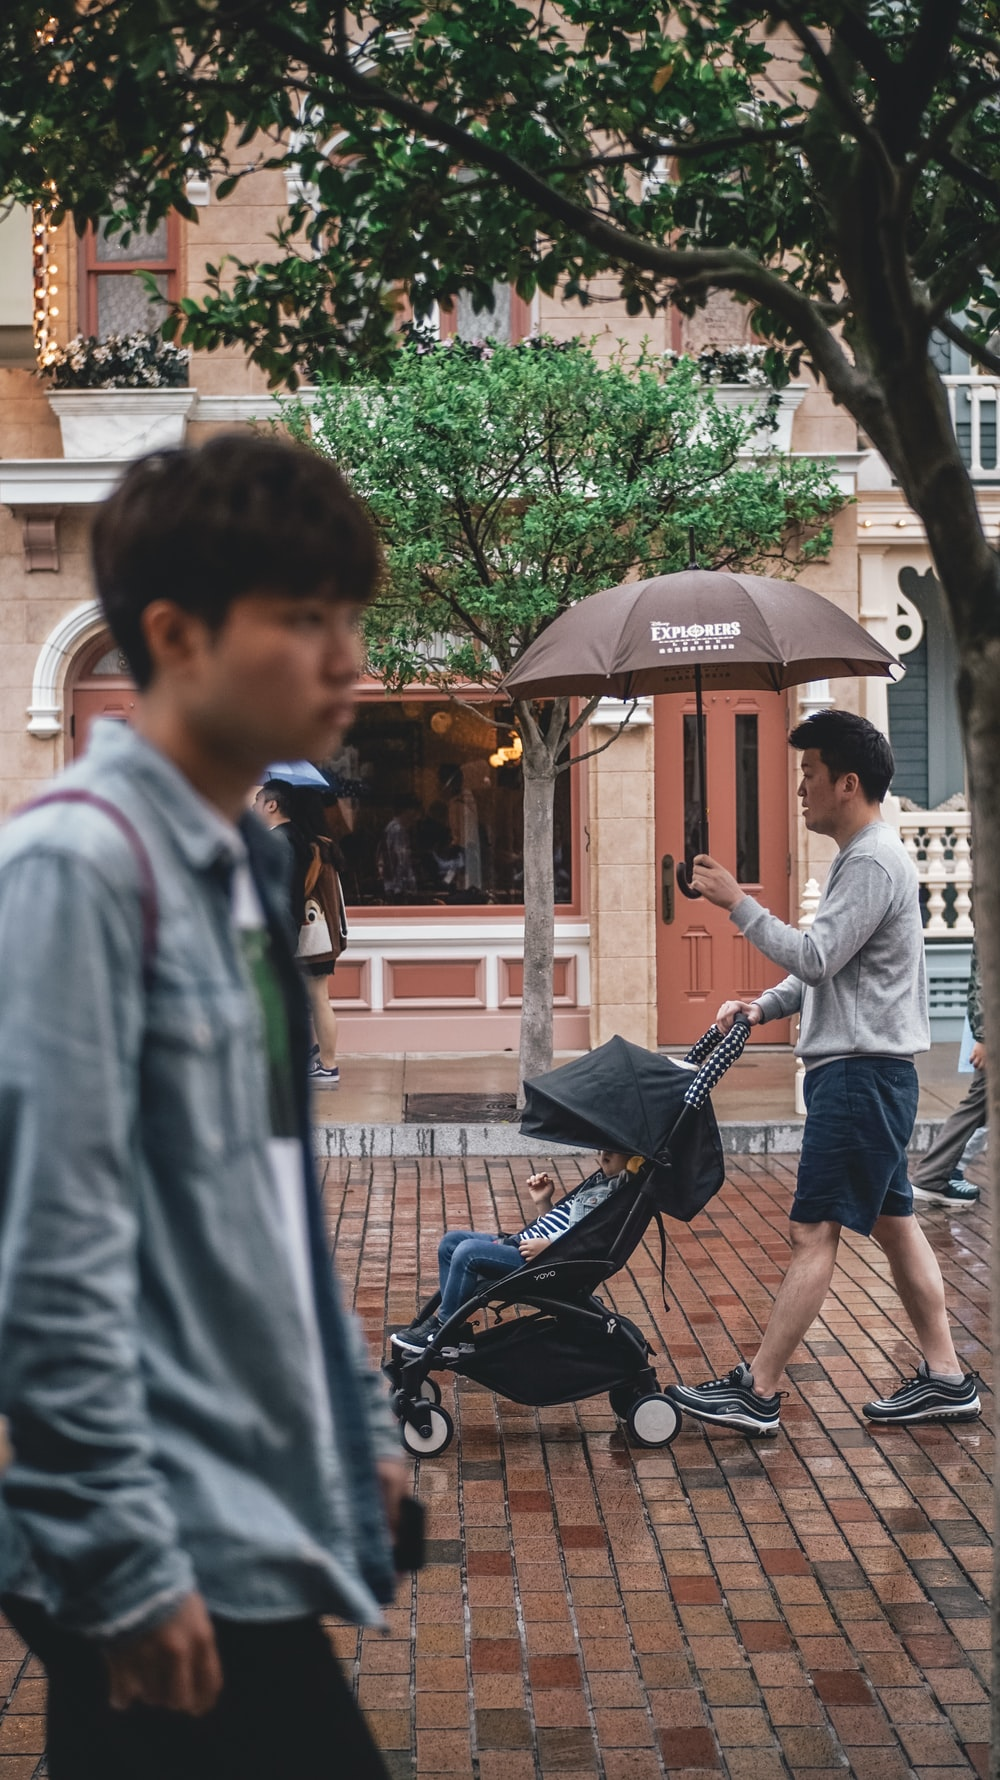 man holding umbrella while pushing stroller